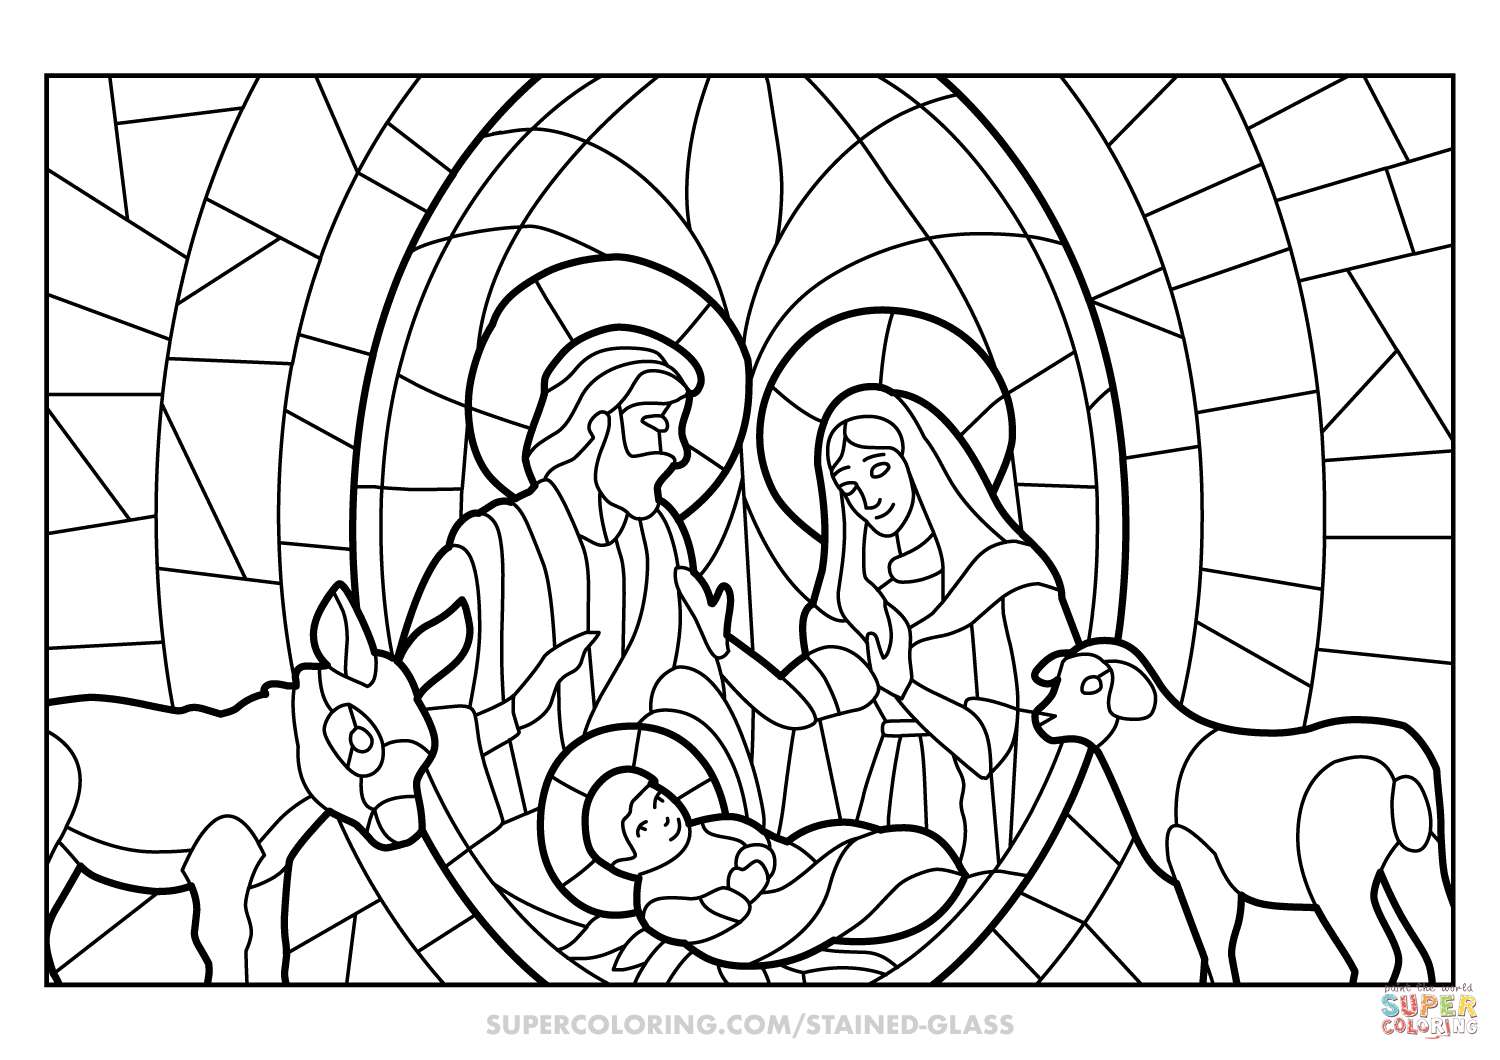 Christmas Nativity Scene Stained Glass Coloring Page Free Printable Coloring Pag Nativity Coloring Pages Printable Christmas Coloring Pages Nativity Coloring